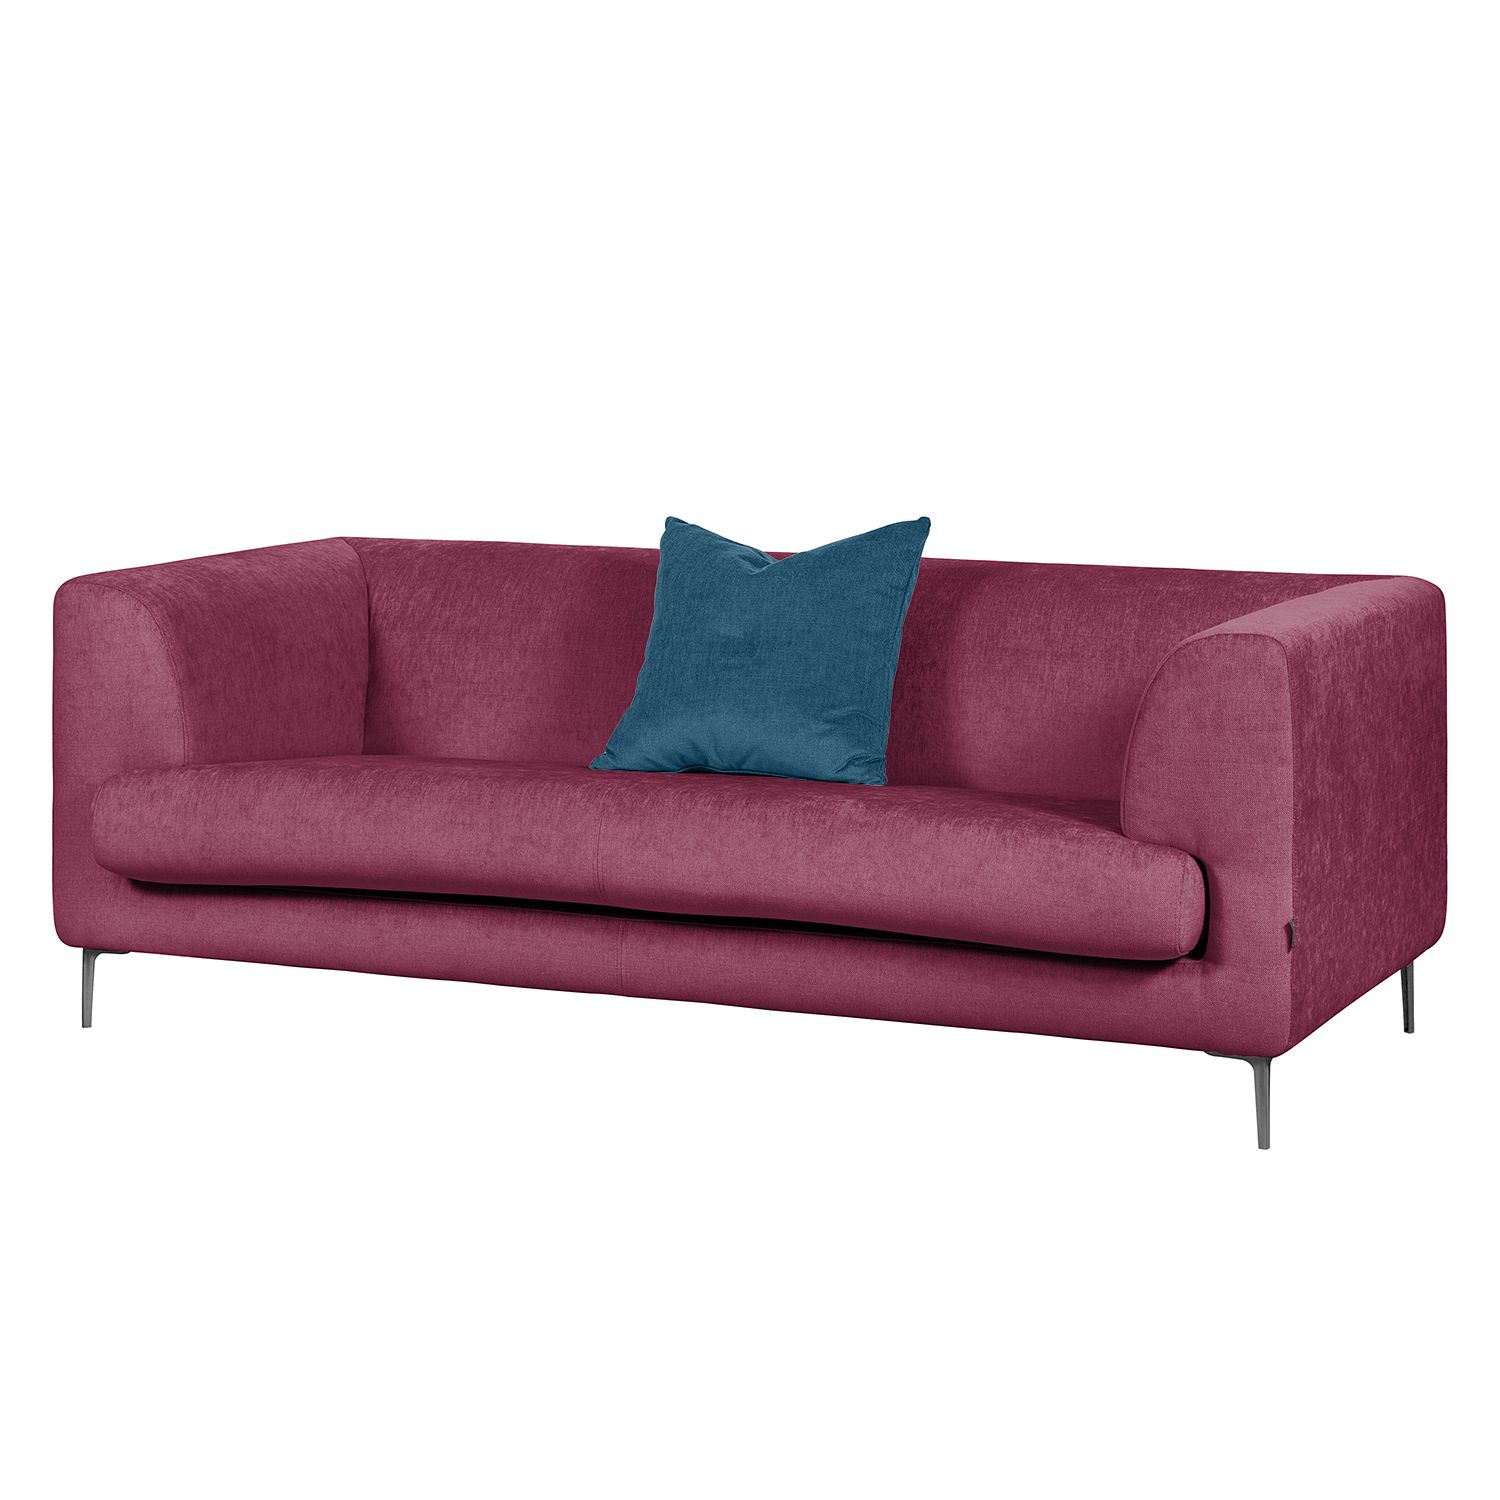 Sofa Sombret (2,5-Sitzer) - Webstoff - Lipstick Pink, Says Who